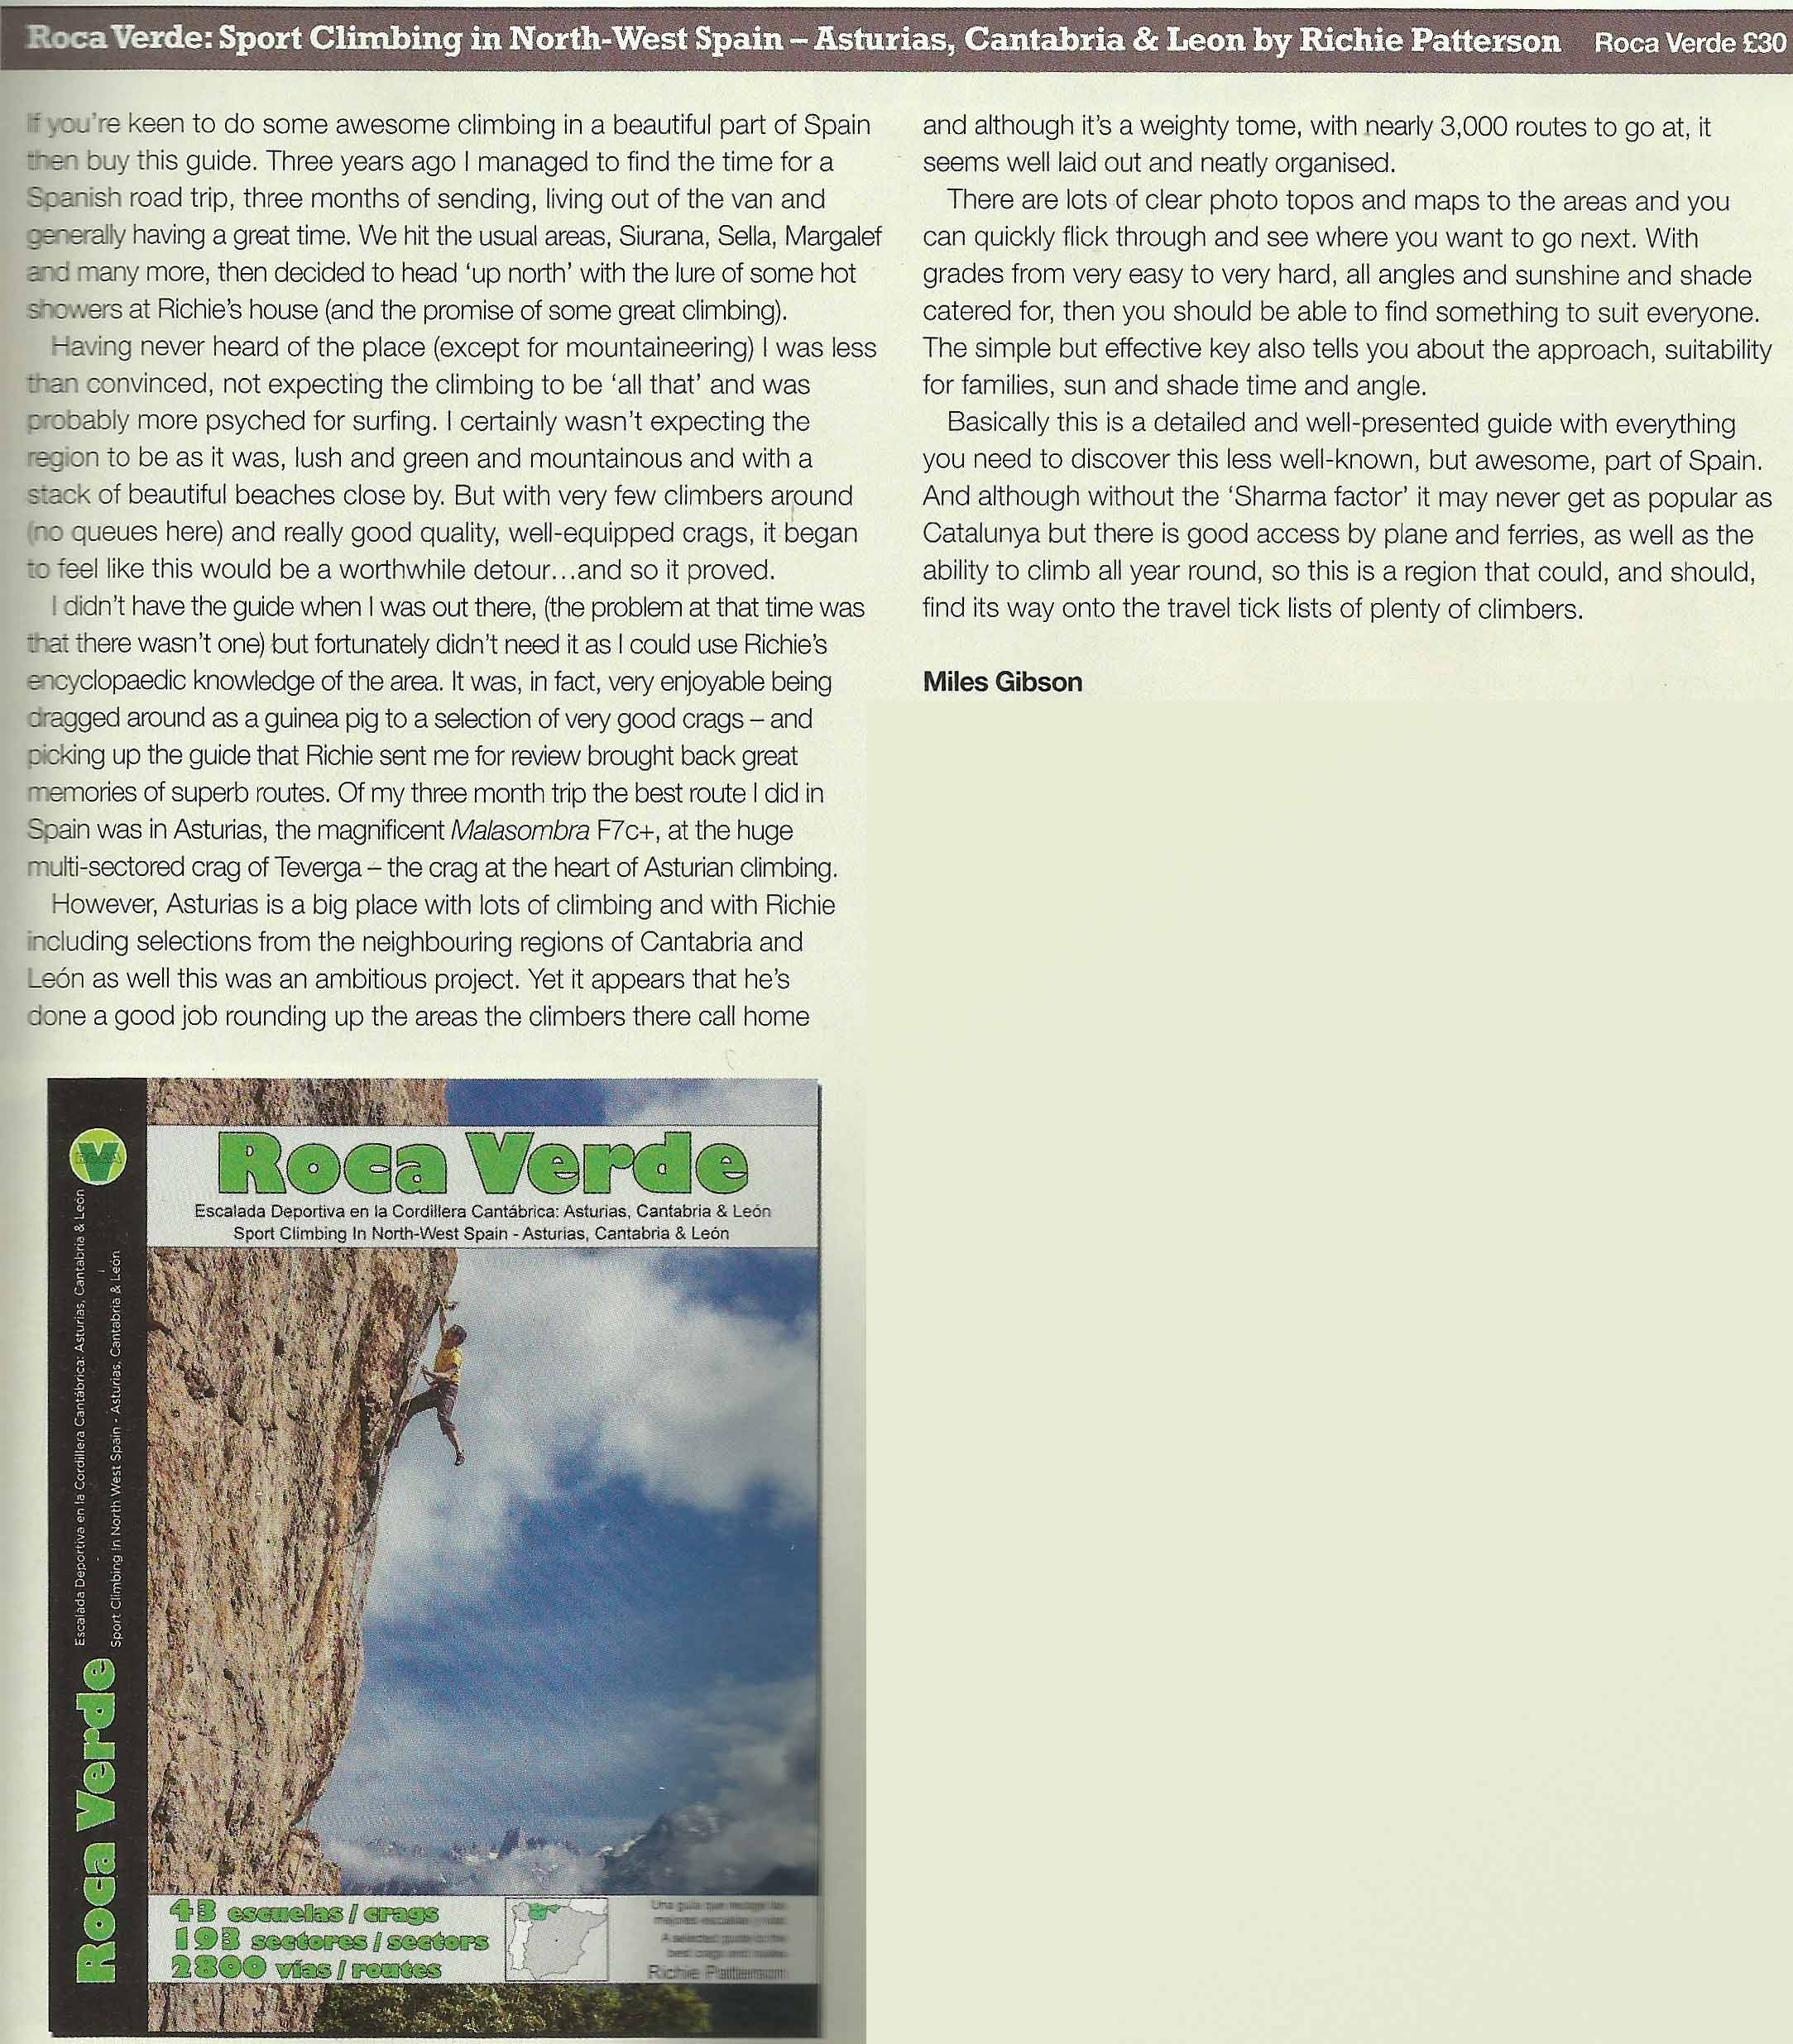 Roca Verde review by Miles Gibson publshed by Climber Magazine Nov 2014